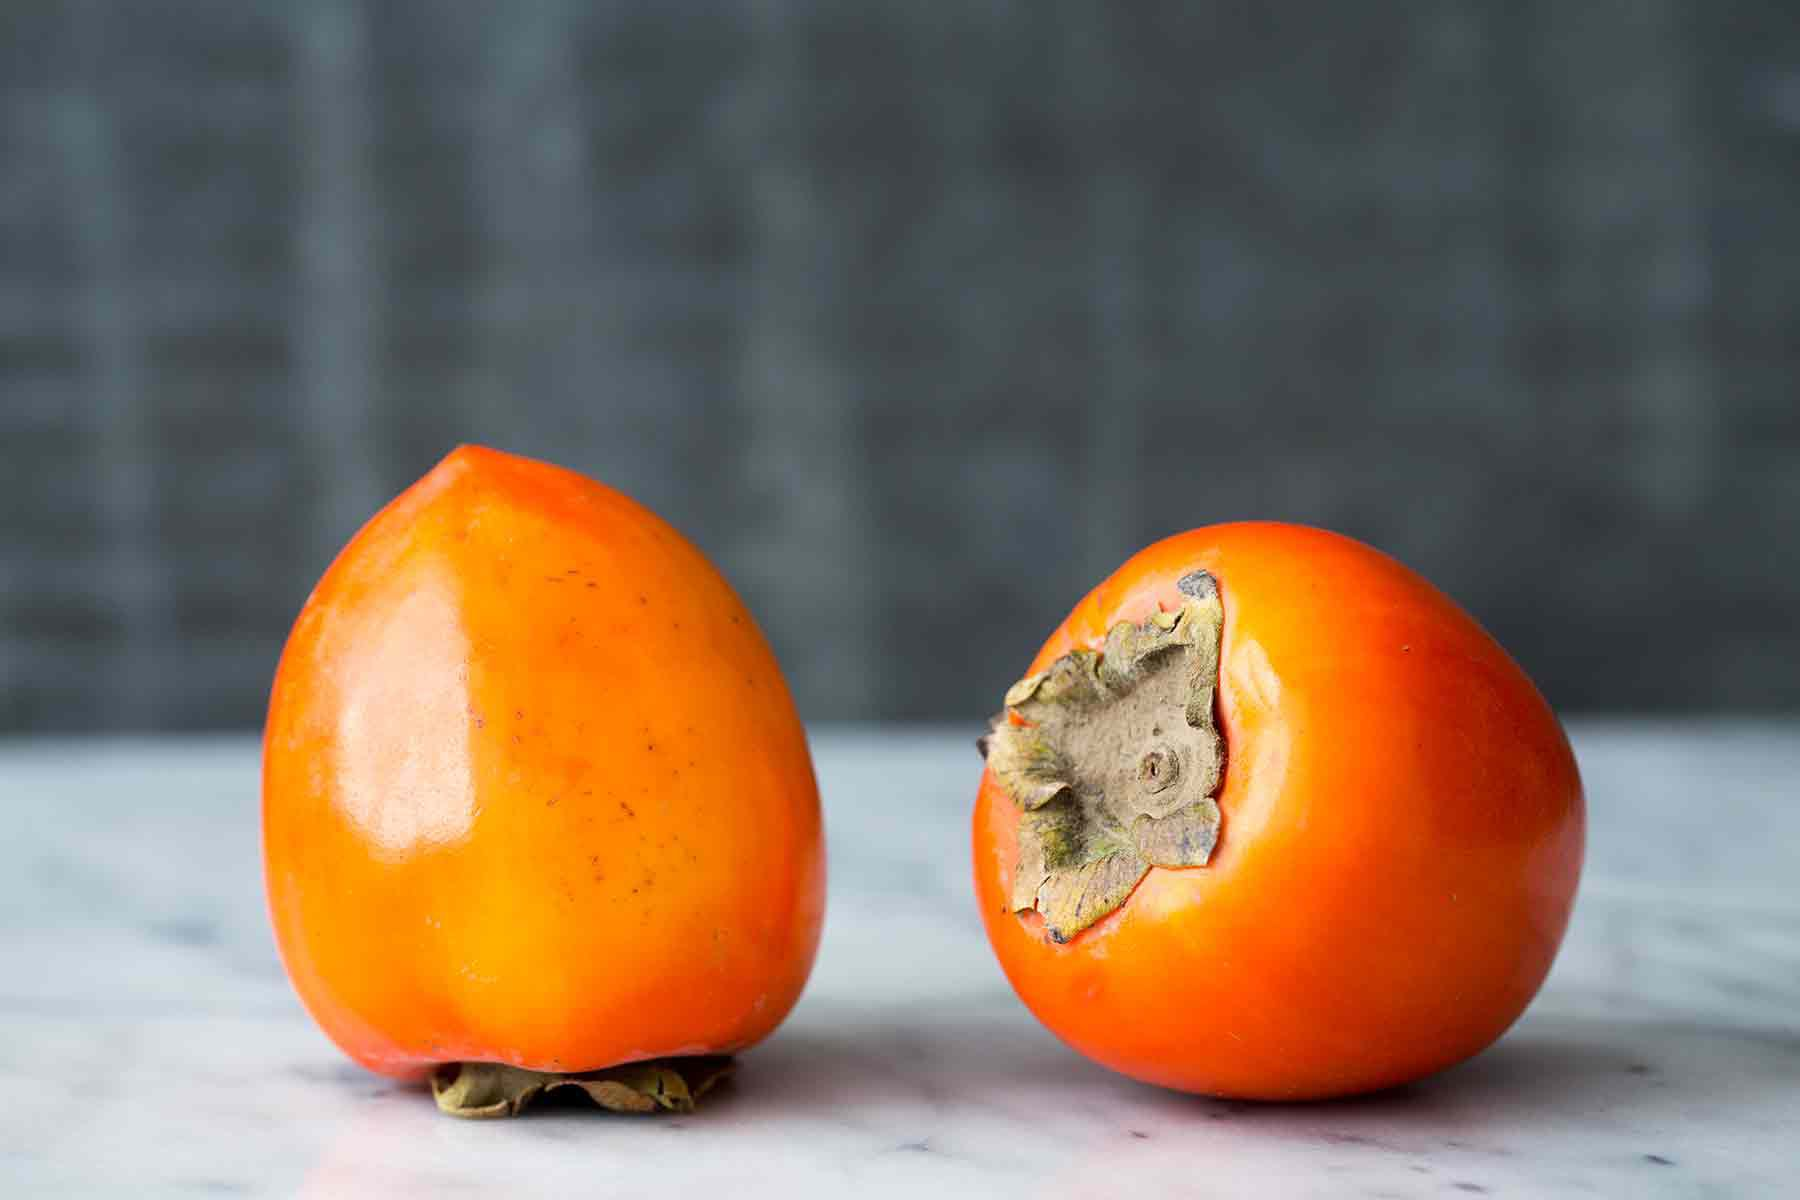 Hachiya Persimmons are acorn shaped